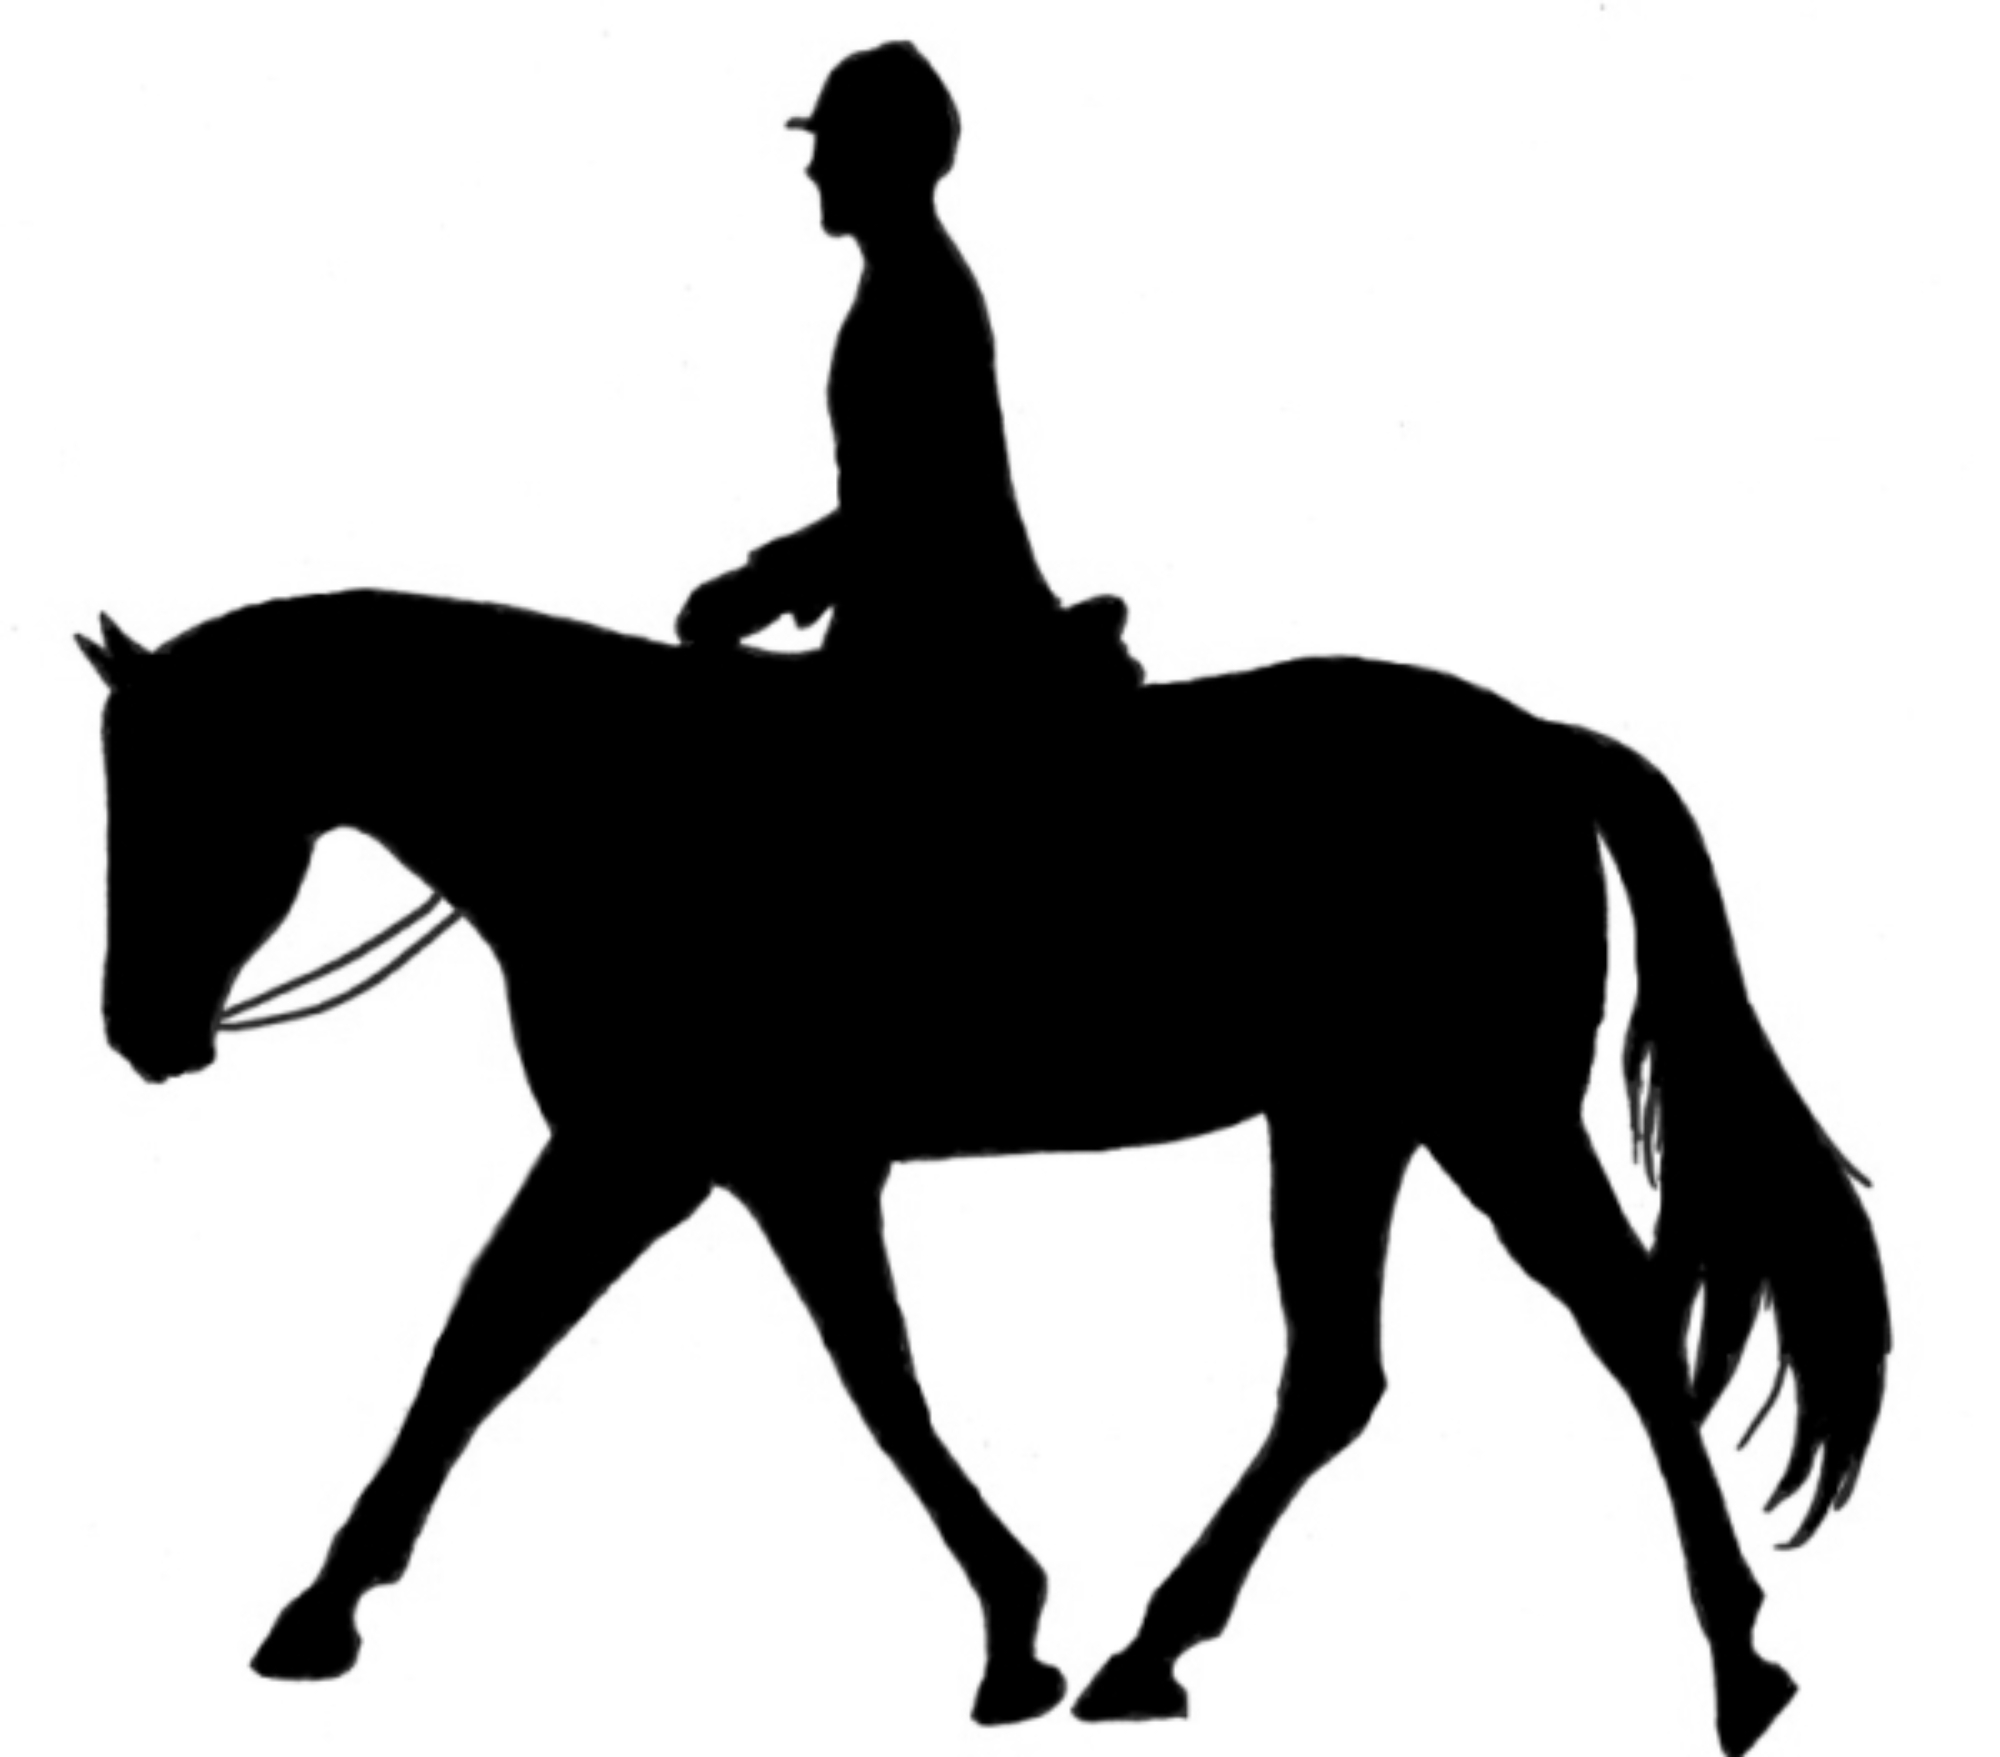 Horse riding clipart 6 » Clipart Station.